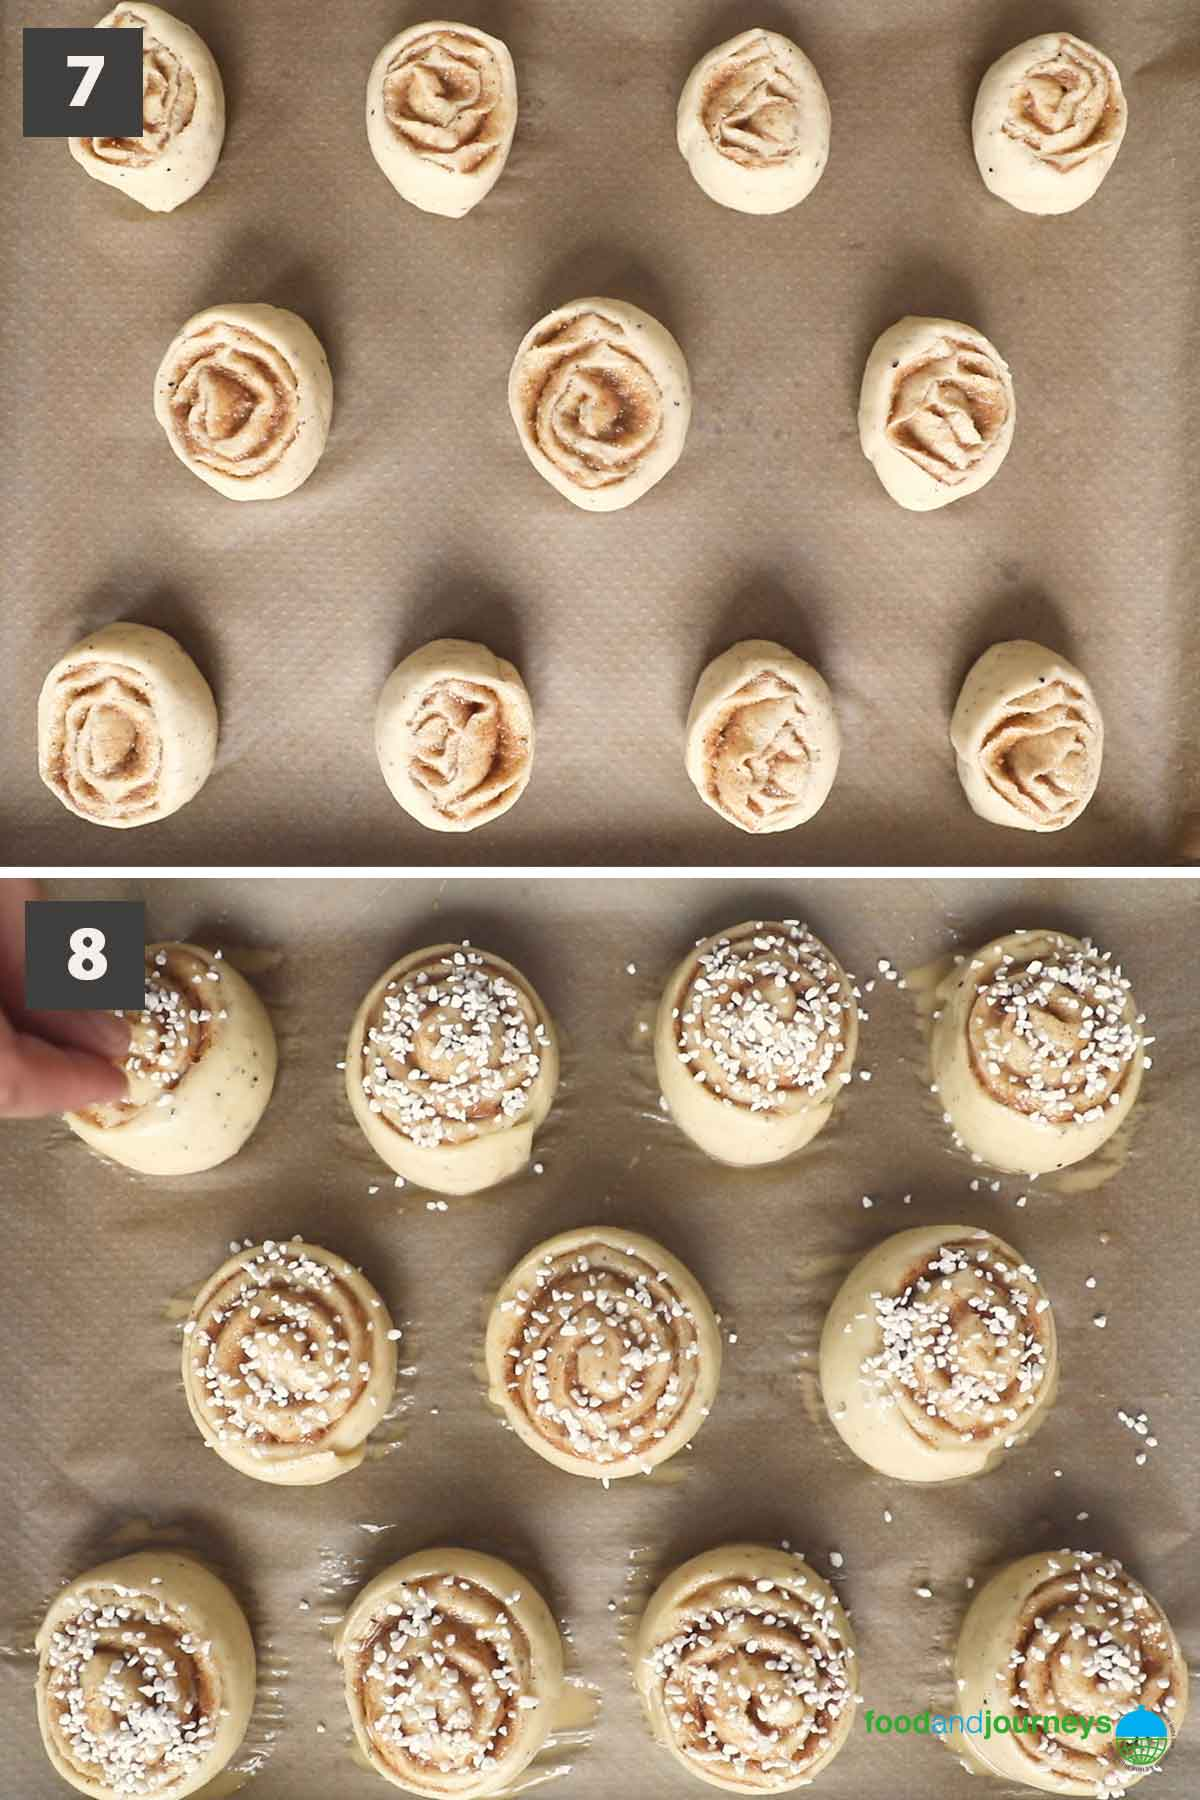 Last part of the updated collage of images showing the step by step process of making kanelbullar at home.